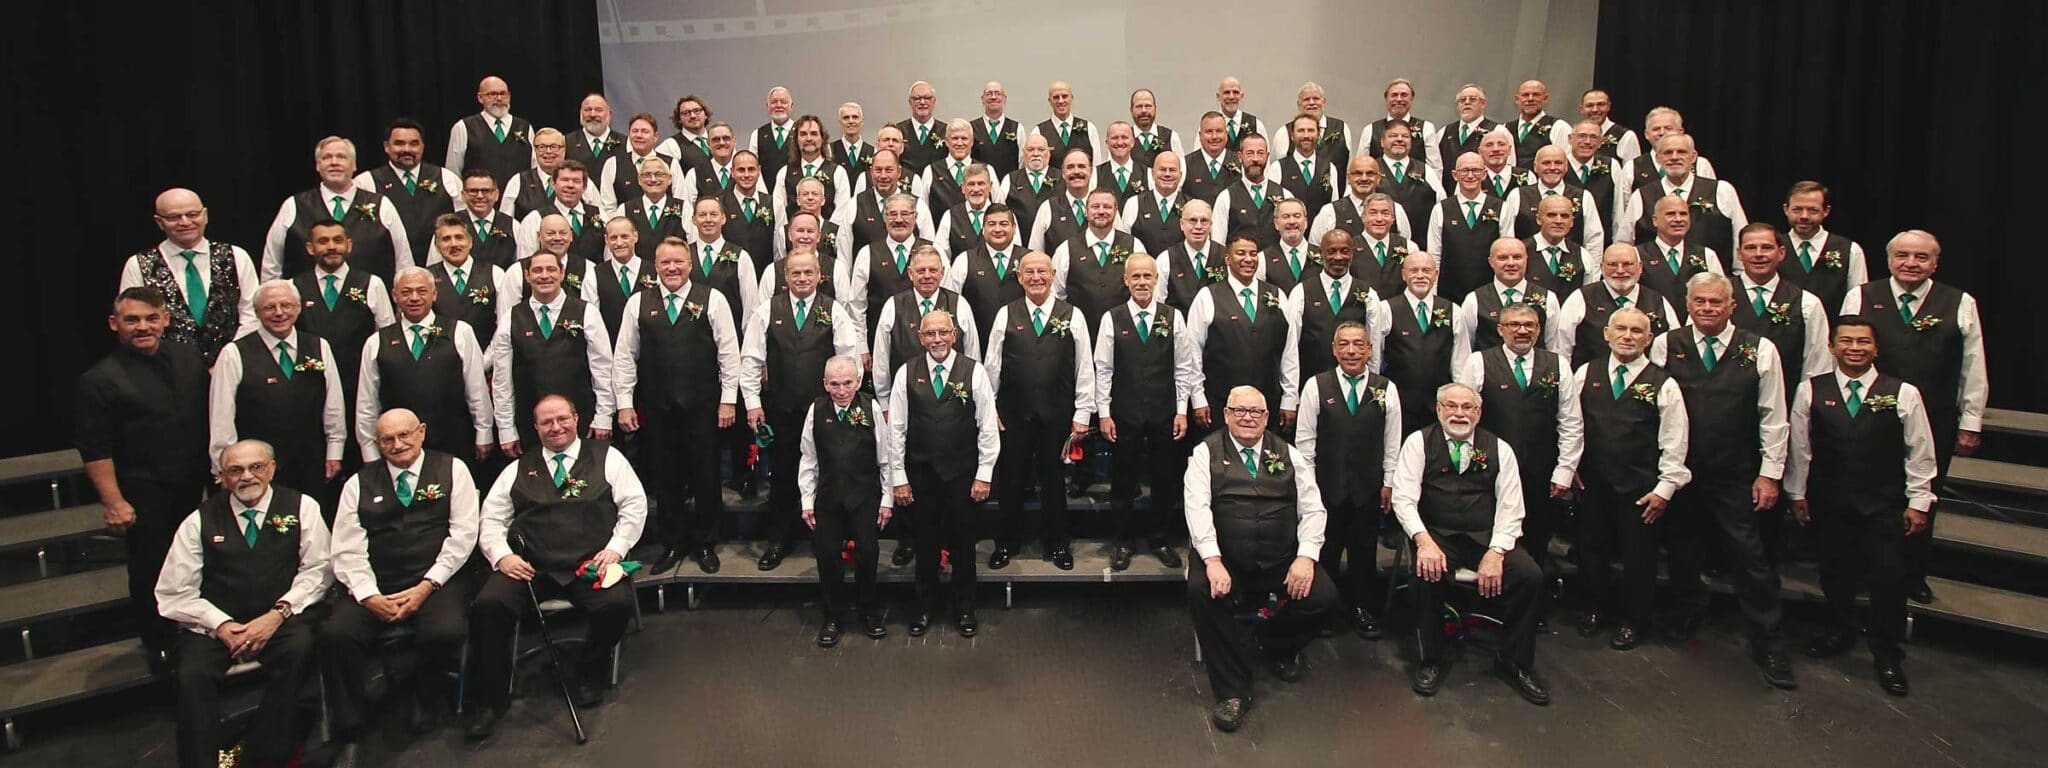 from Dawson palm springs gay mens chorus